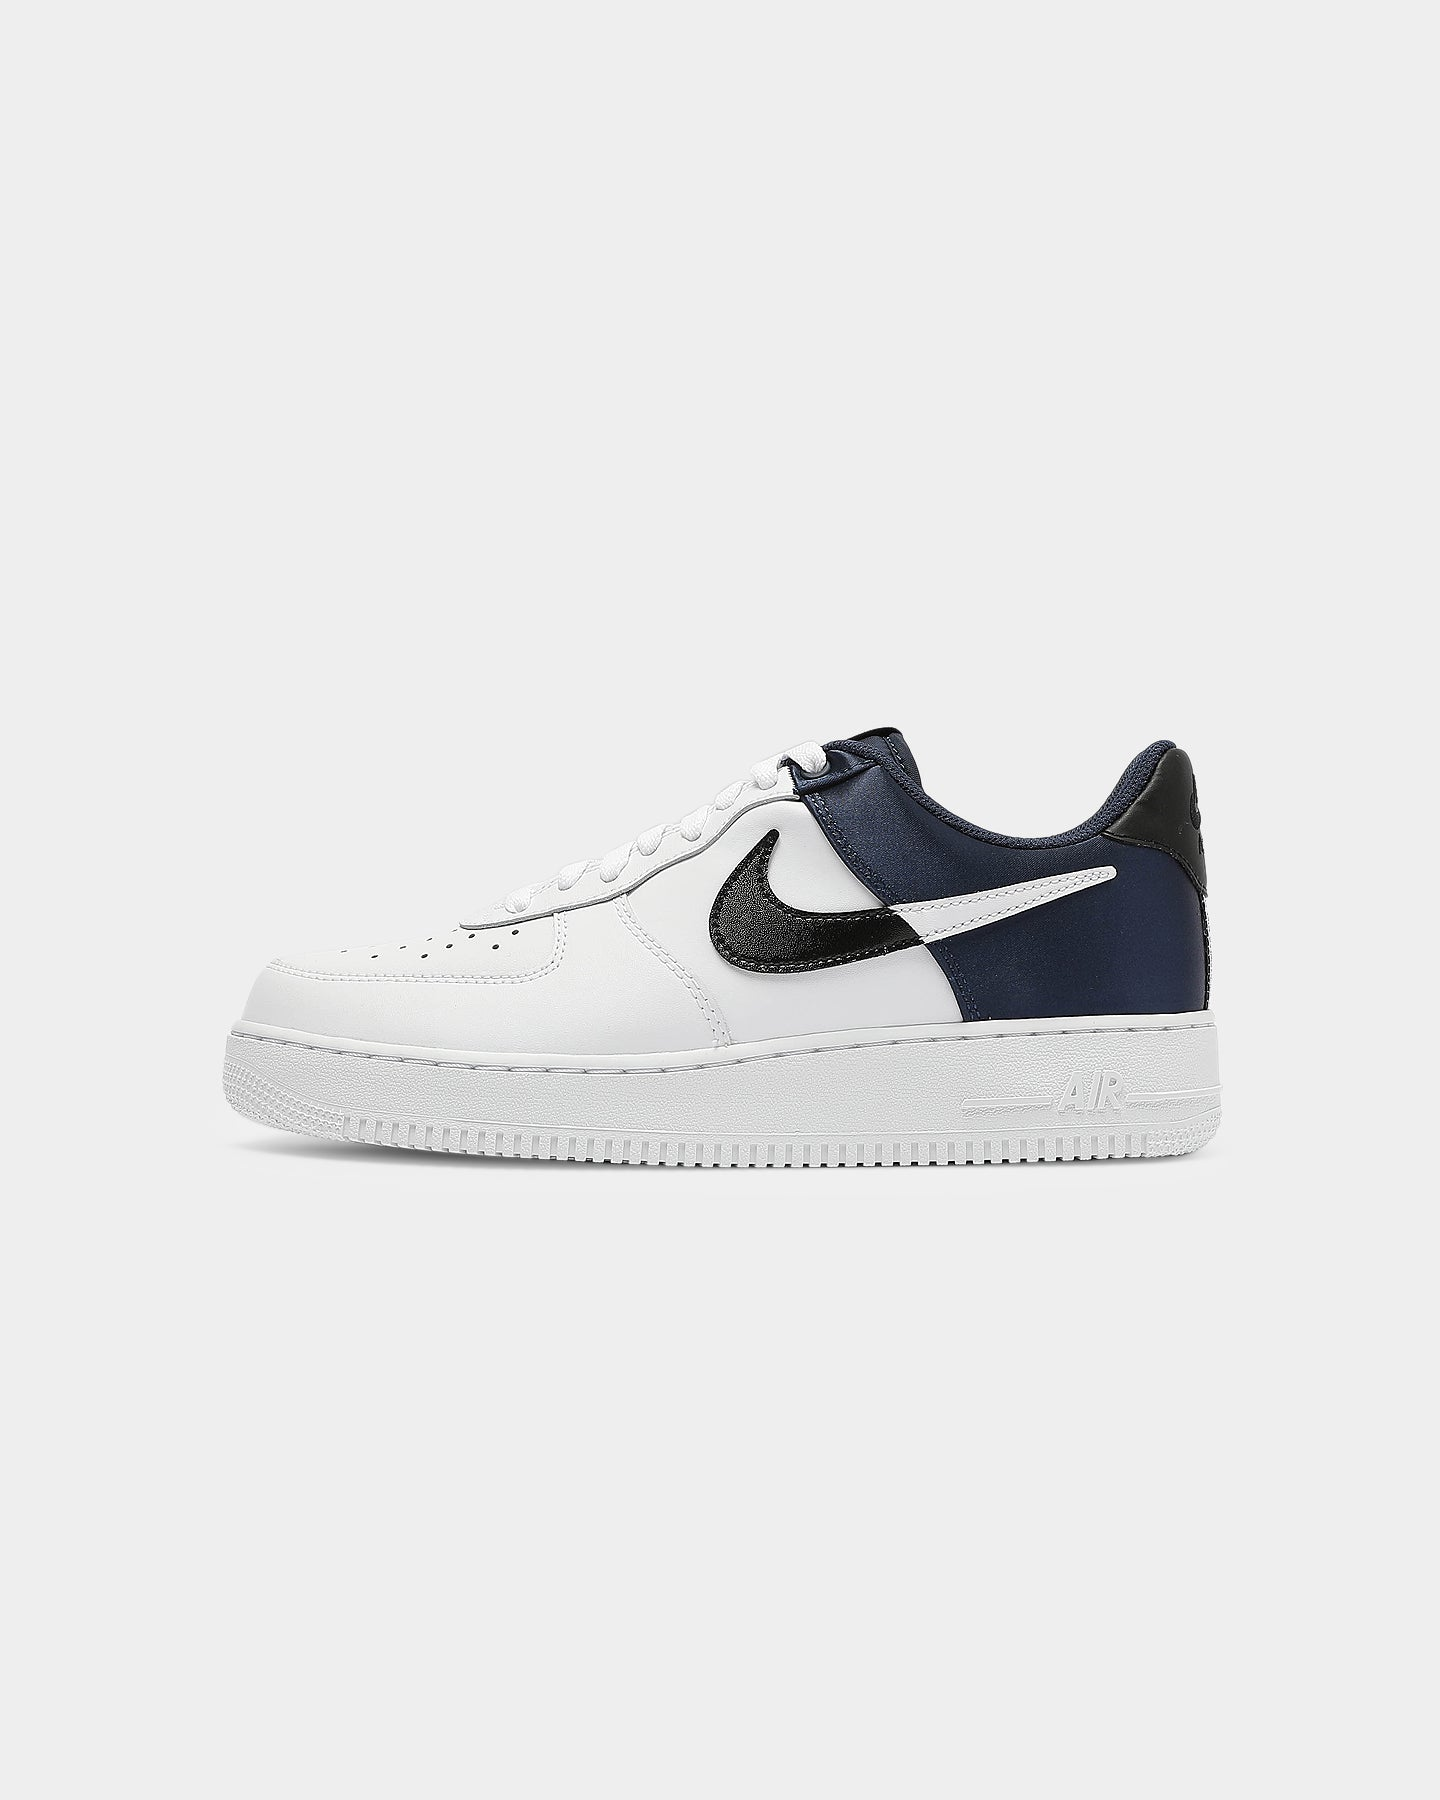 Nike Air Force 1 '07 LV8 1 NavyWhiteBlack